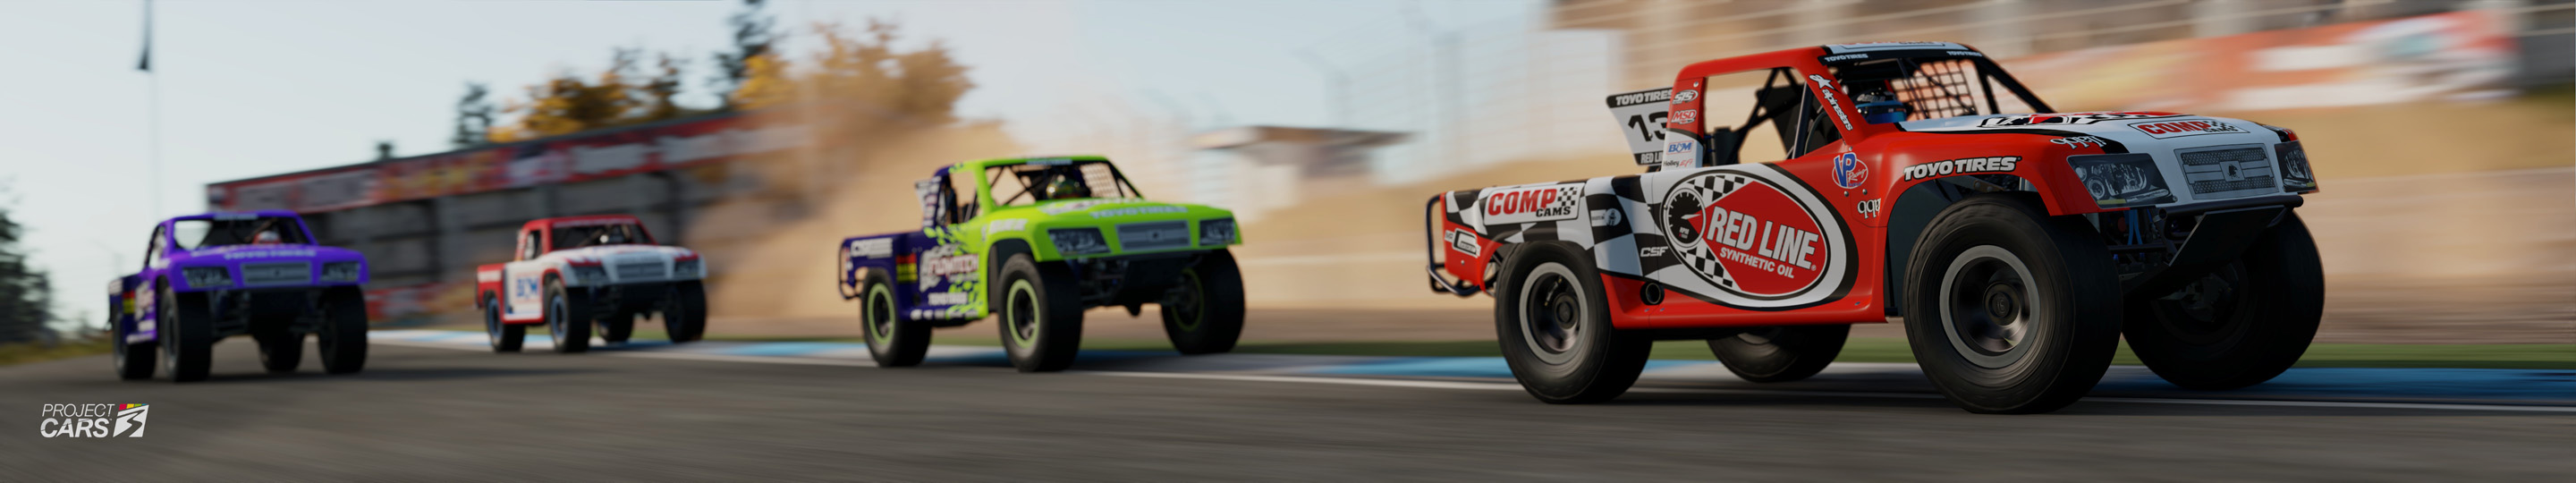 1 PROJECT CARS 3 SUPER TRUCK at KNOCKHILL copy.jpg